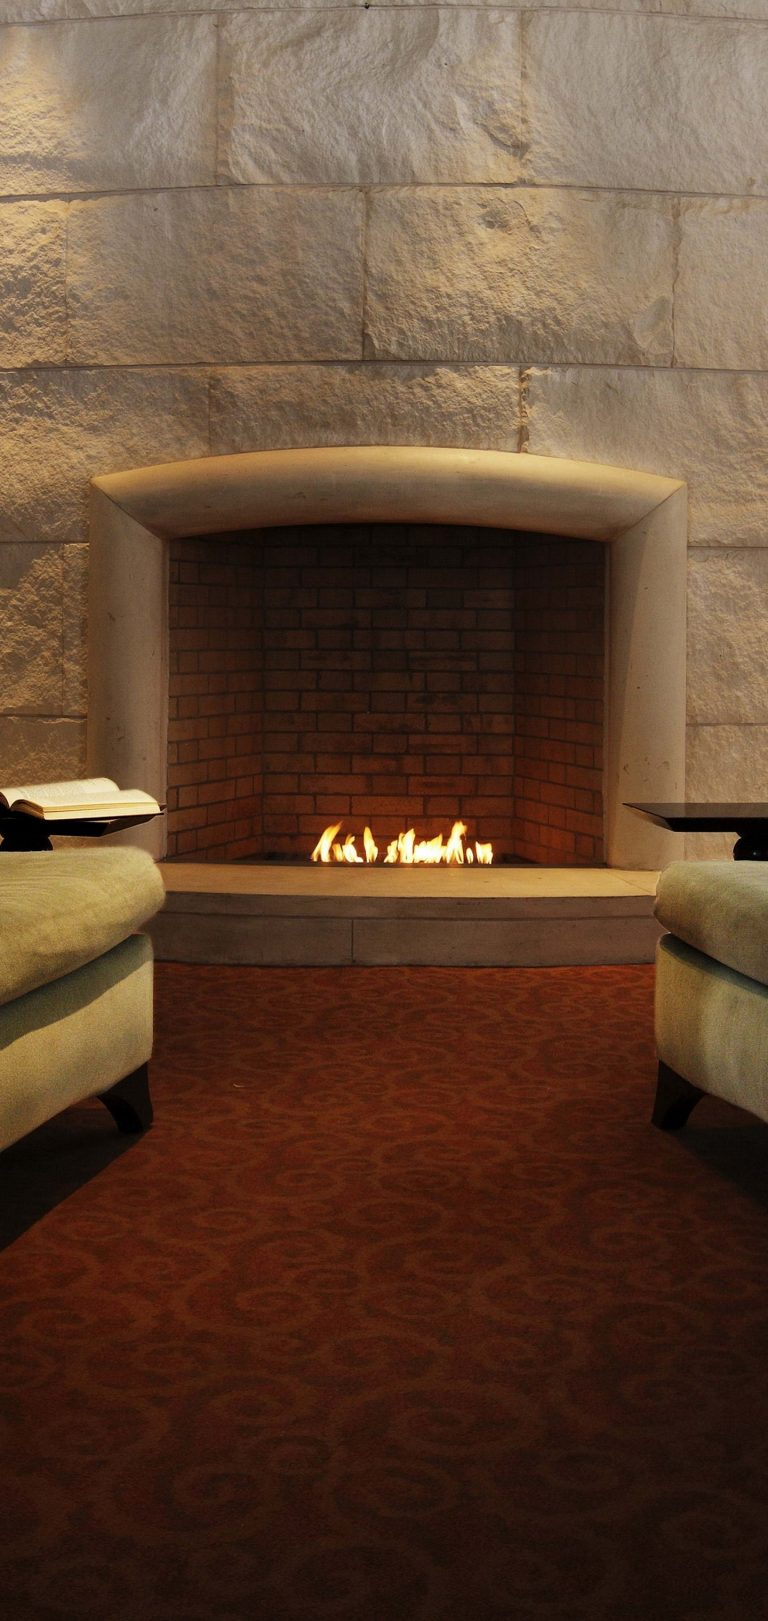 Fireplace Example Interior Living Wallpaper 1440x3040 768x1621